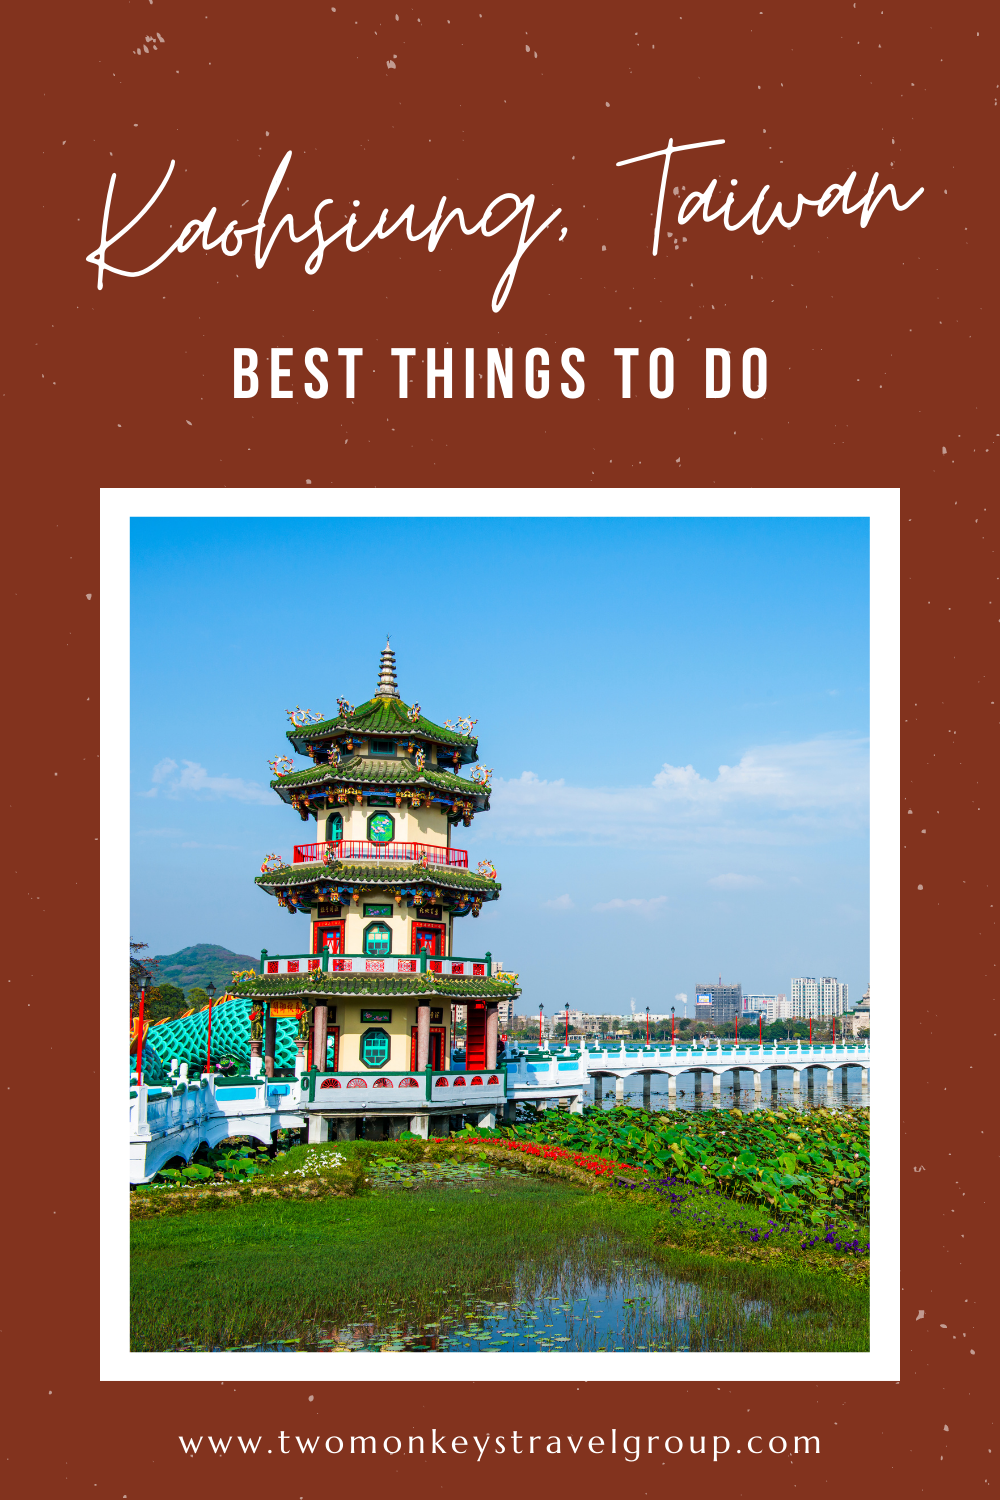 10 Best Things To Do In Kaohsiung, Taiwan [with Suggested Tours]